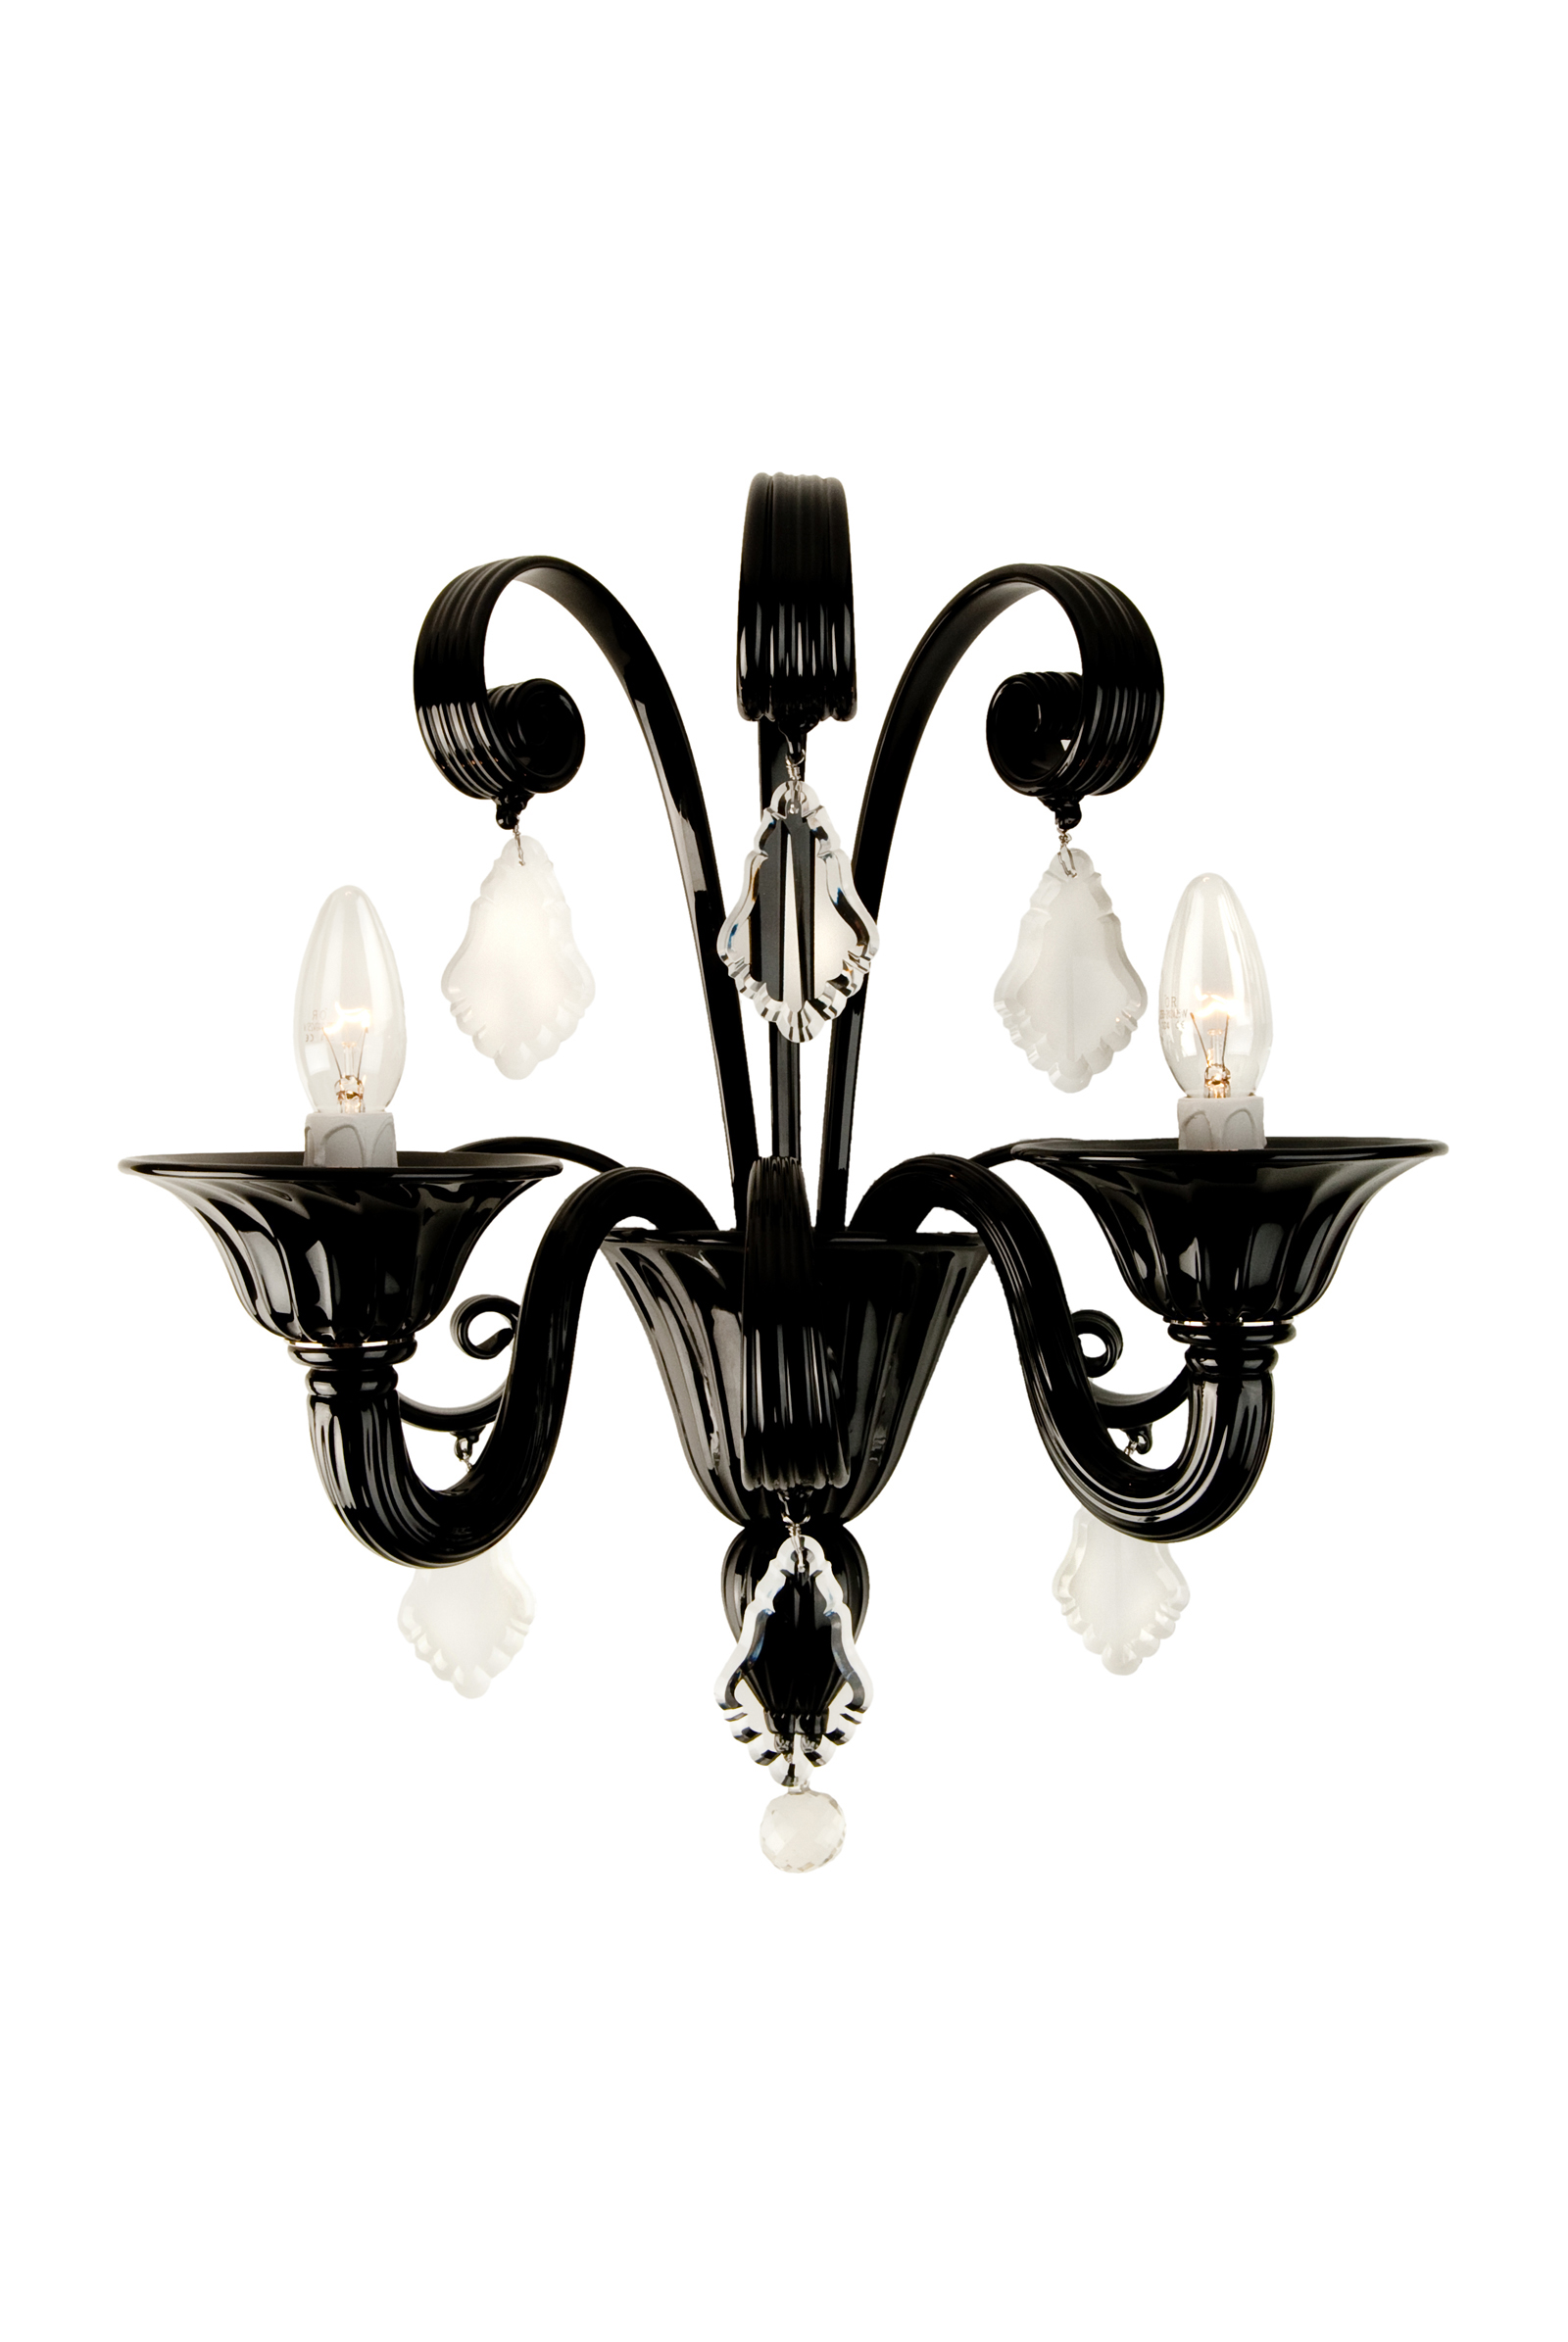 flanelle-applique-wall-sconce-chandelier-veronese-11.jpg